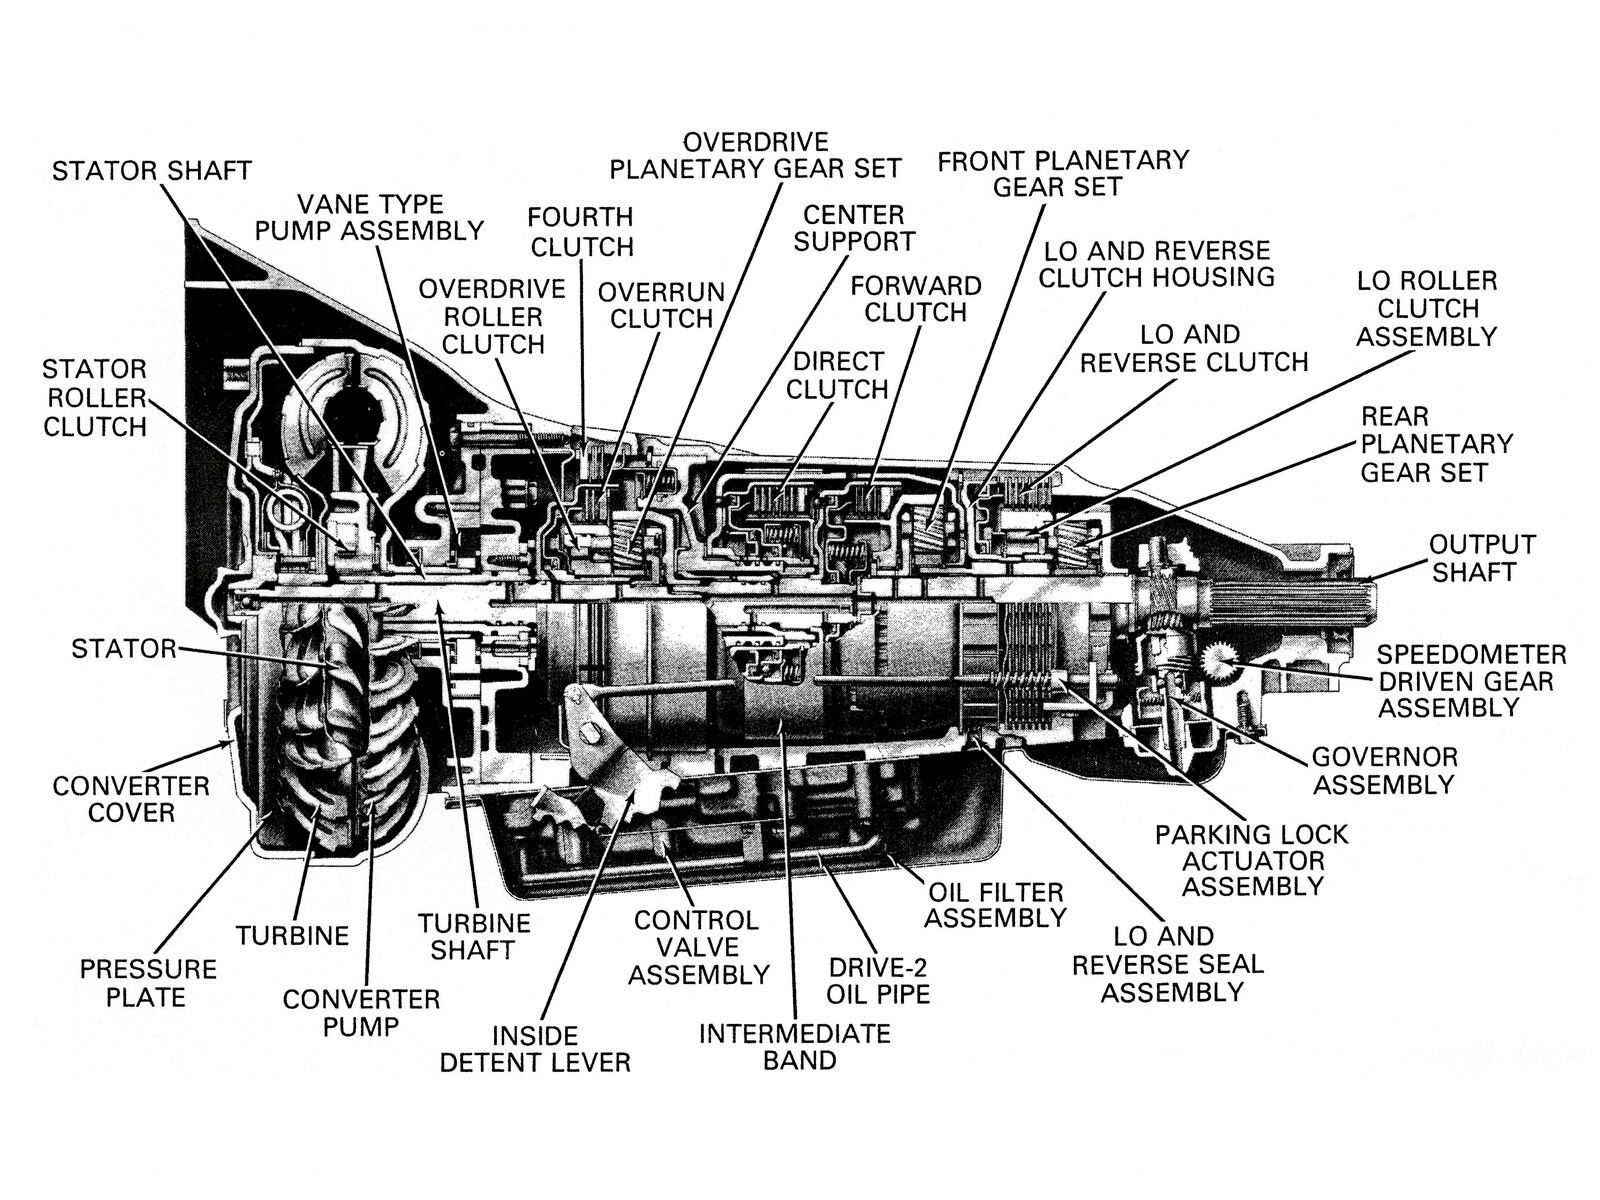 image search, hot rods, fair grounds, spaceship, diagram, yahoo search,